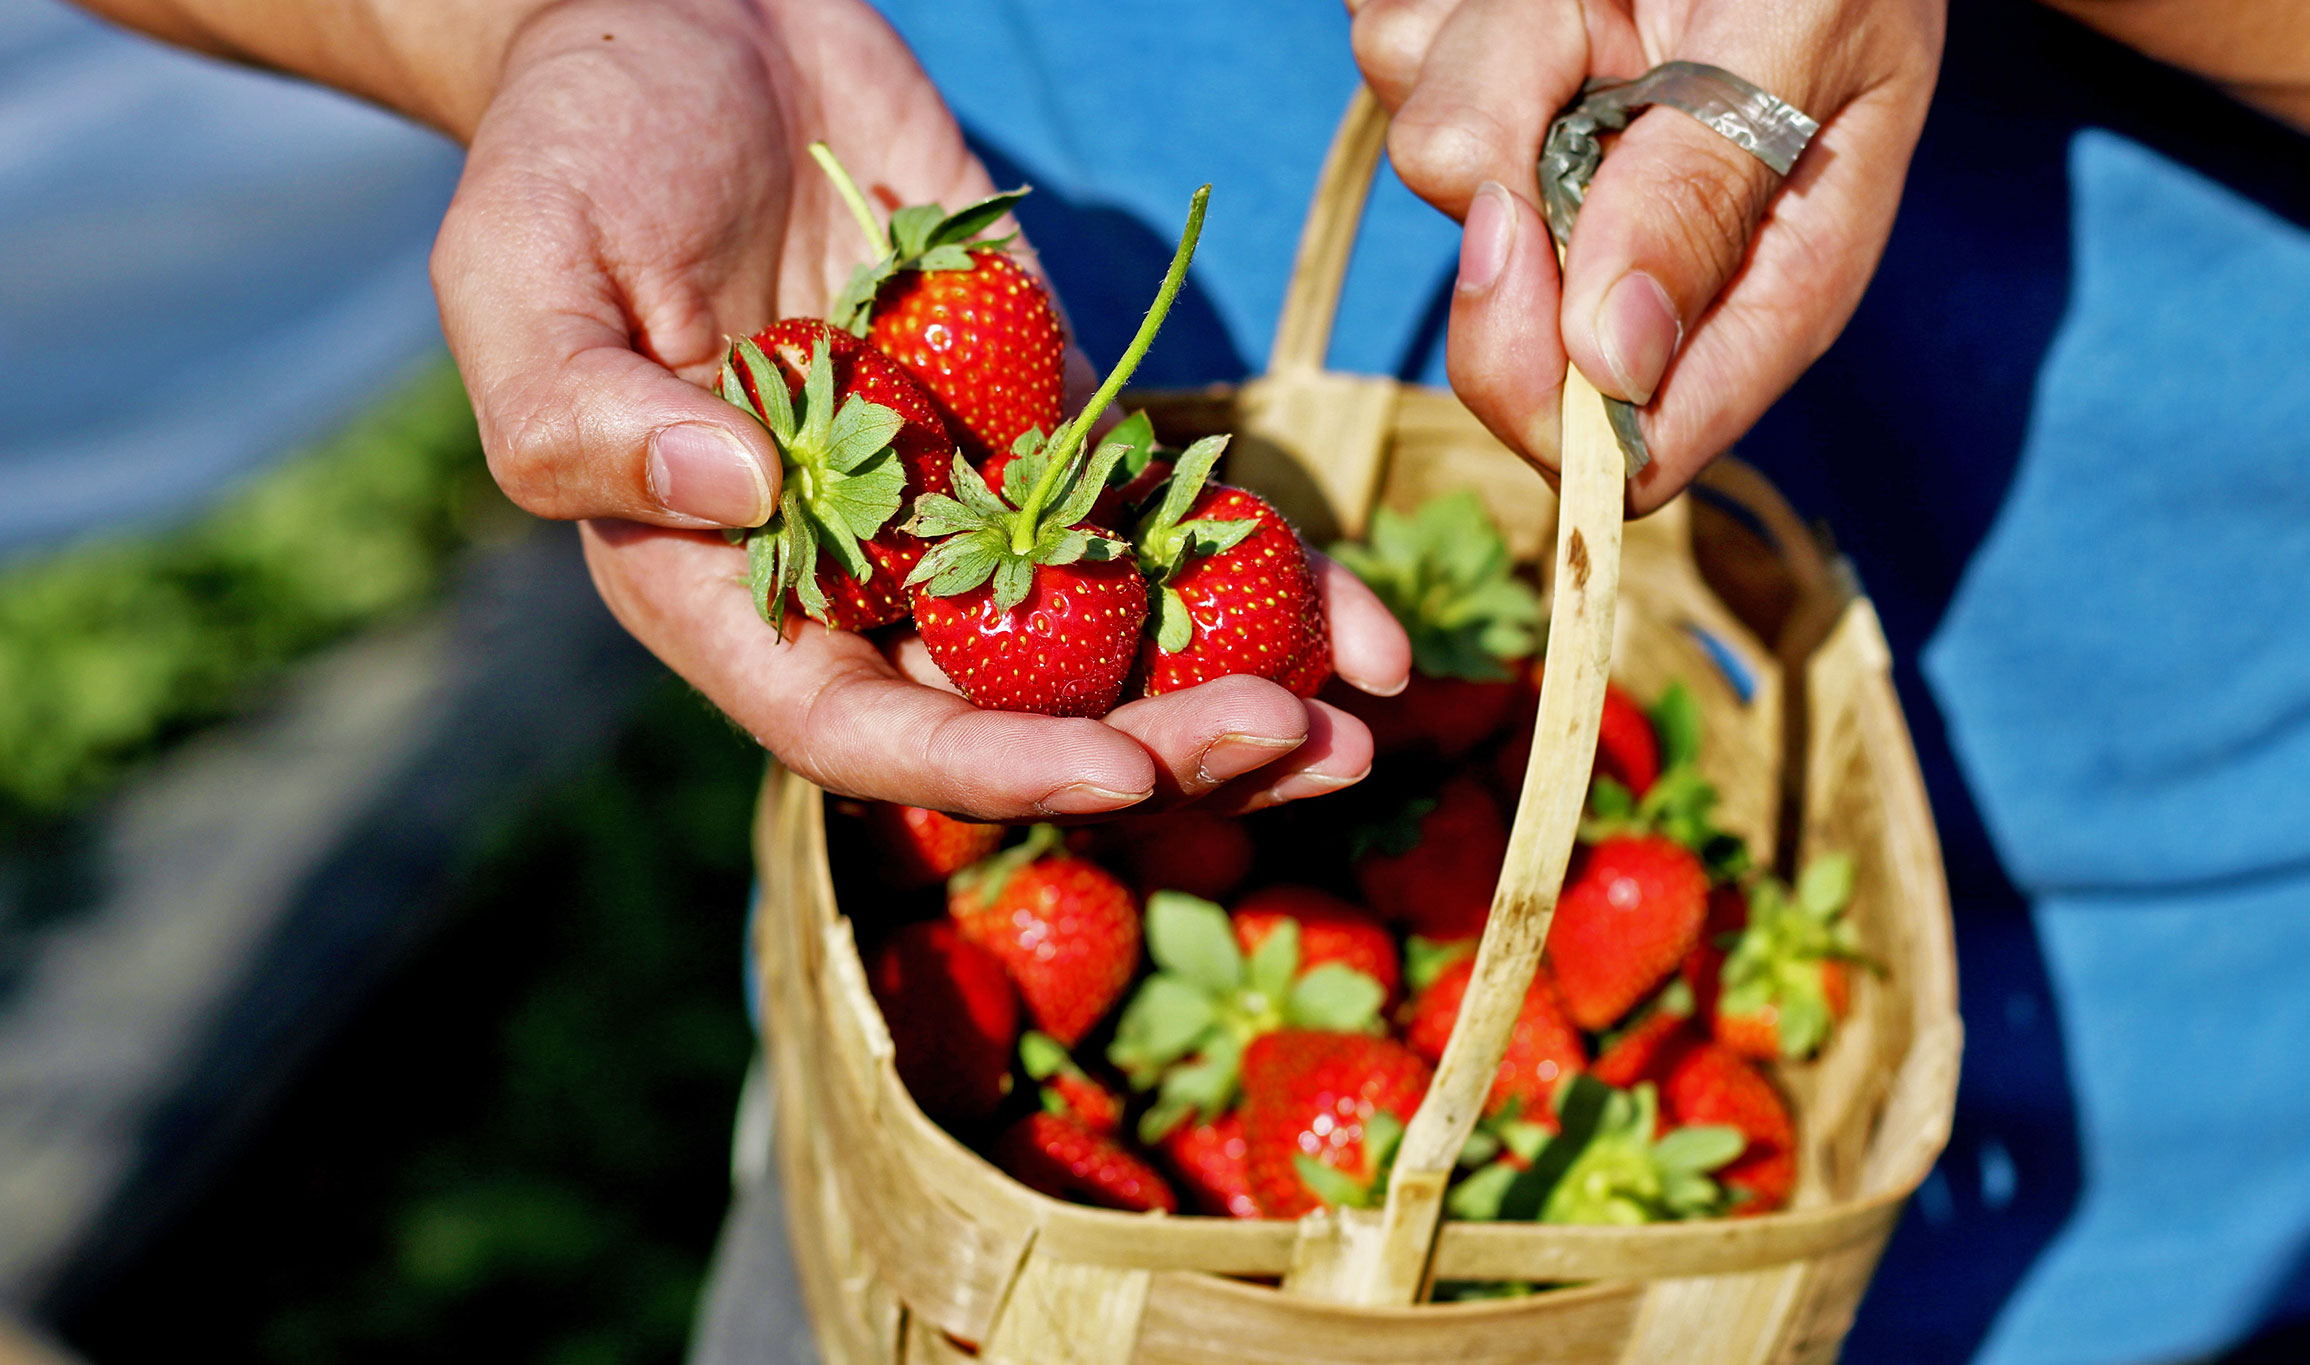 Fresh strawberries from a farm in Benguet